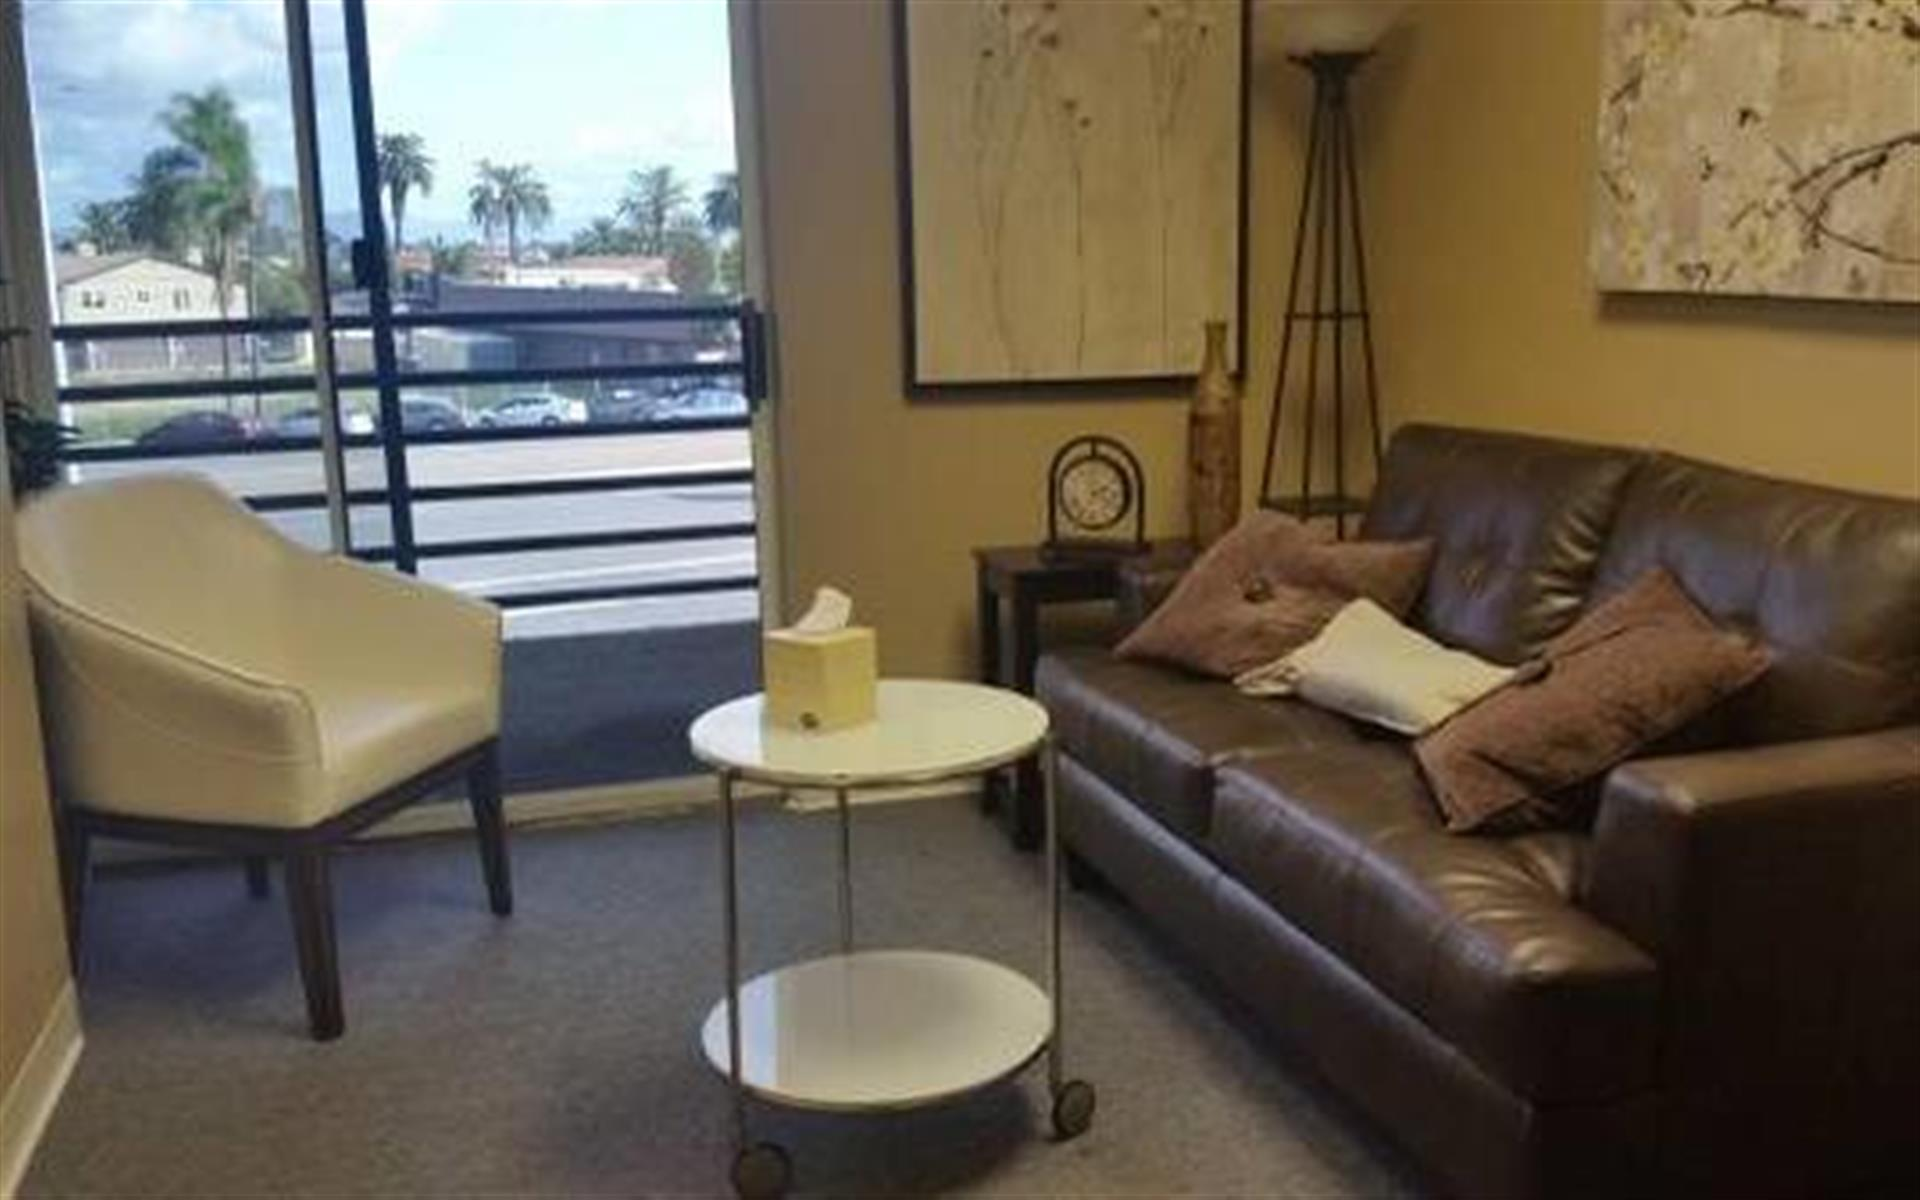 Hillcrest Wellness Centers - Mission Valley - Office